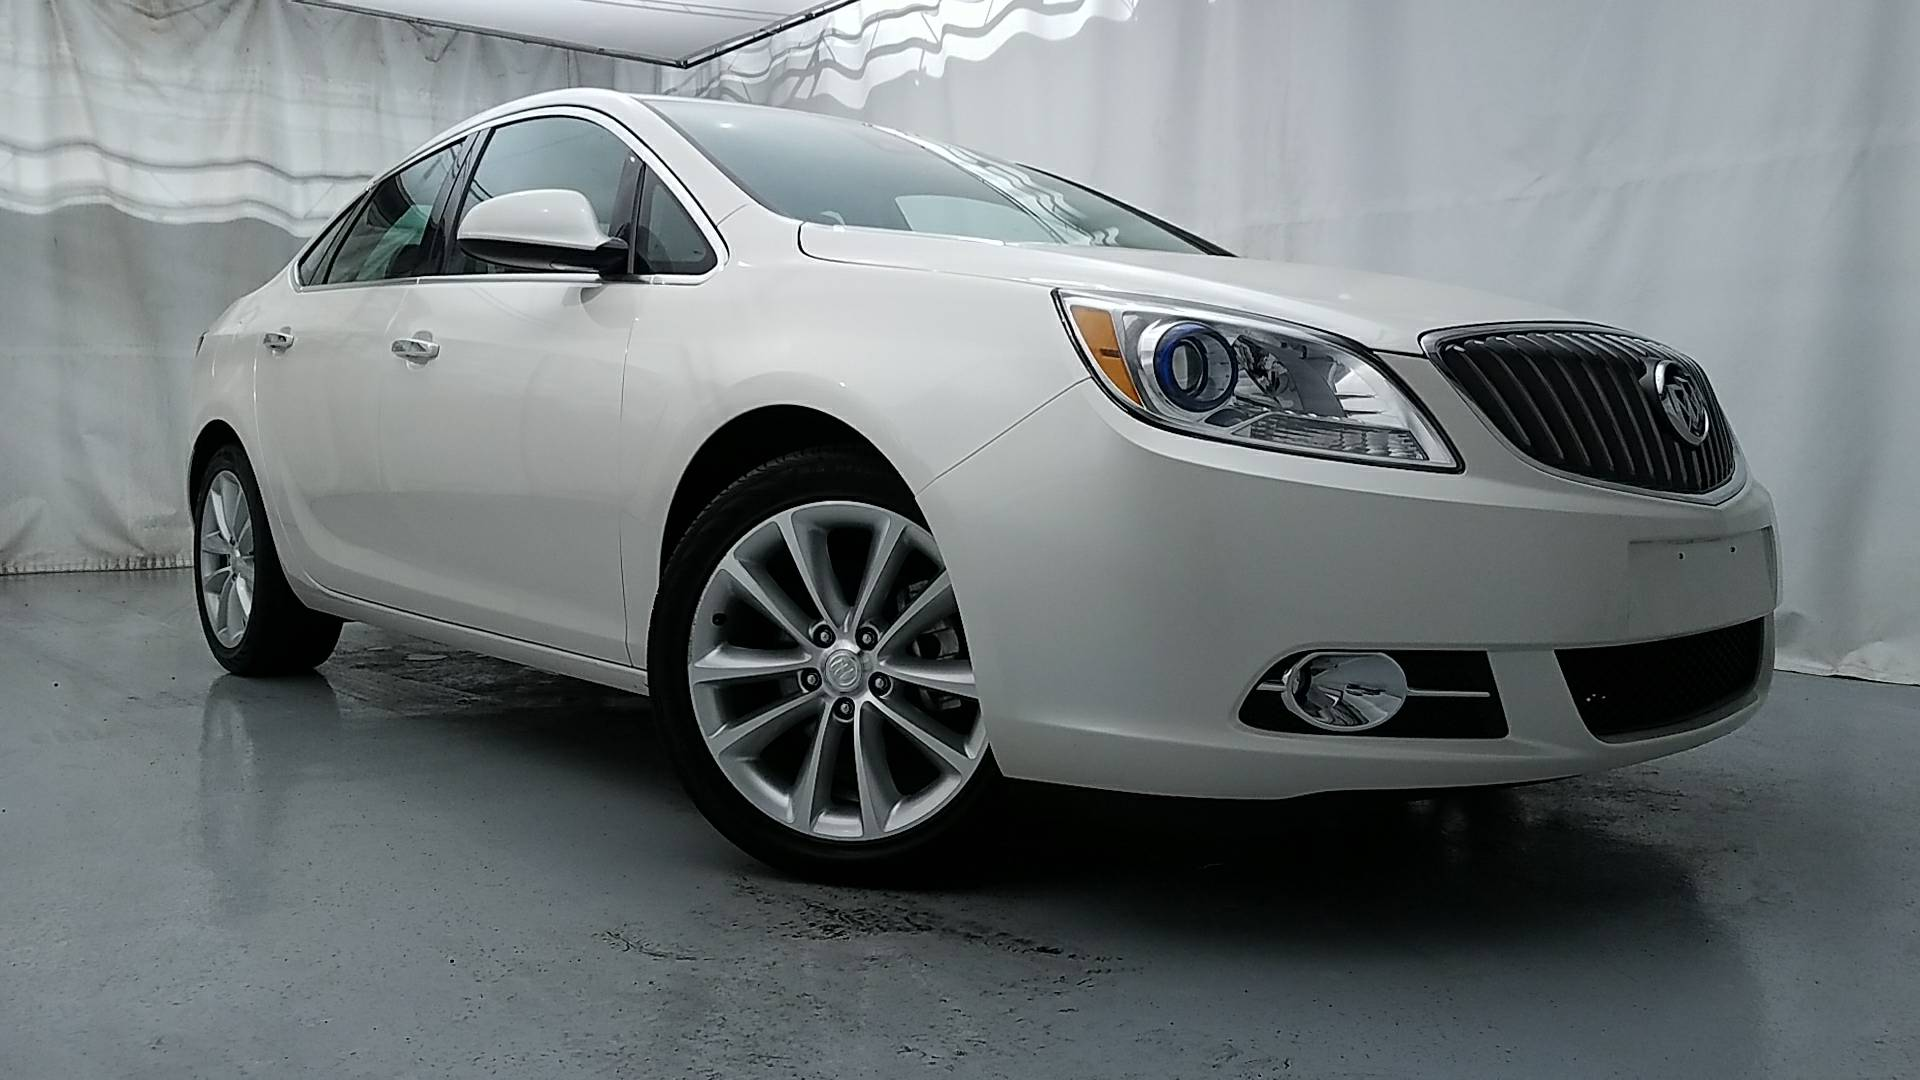 Used Buick Vehicles for Sale in Hammond LA